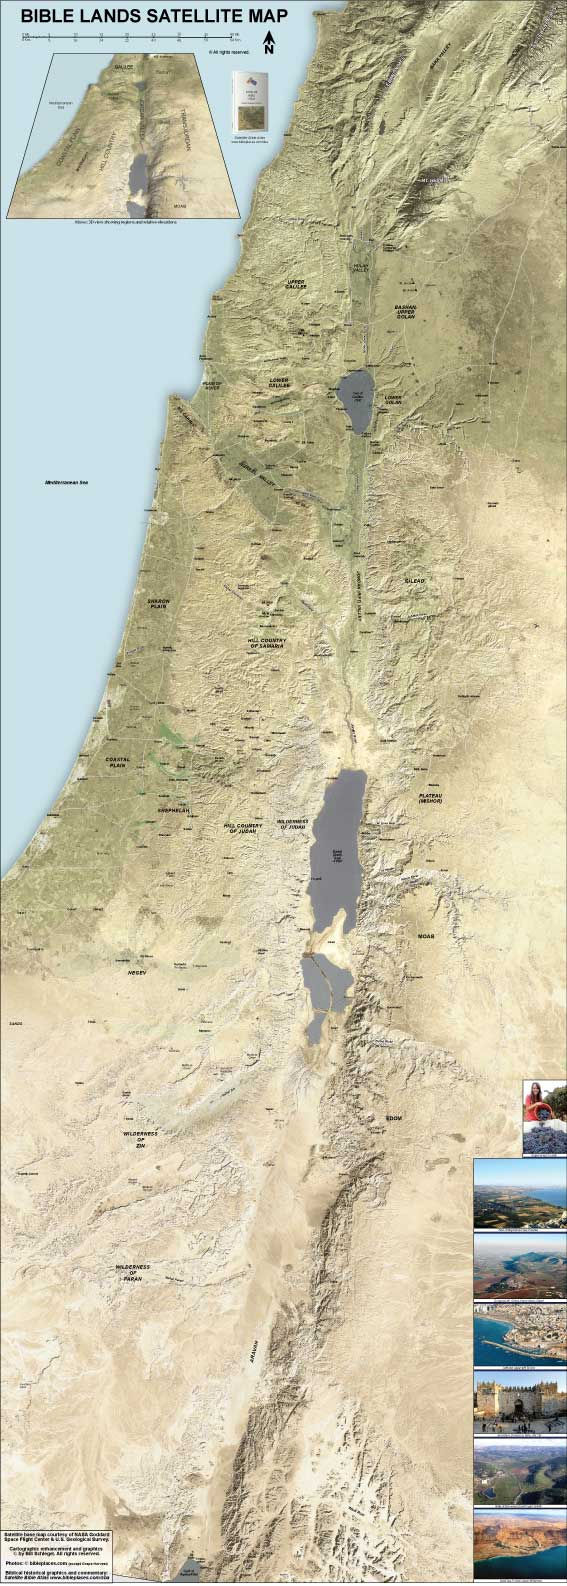 Full-Israel-map-2.1-567x1386-30-percent-quality